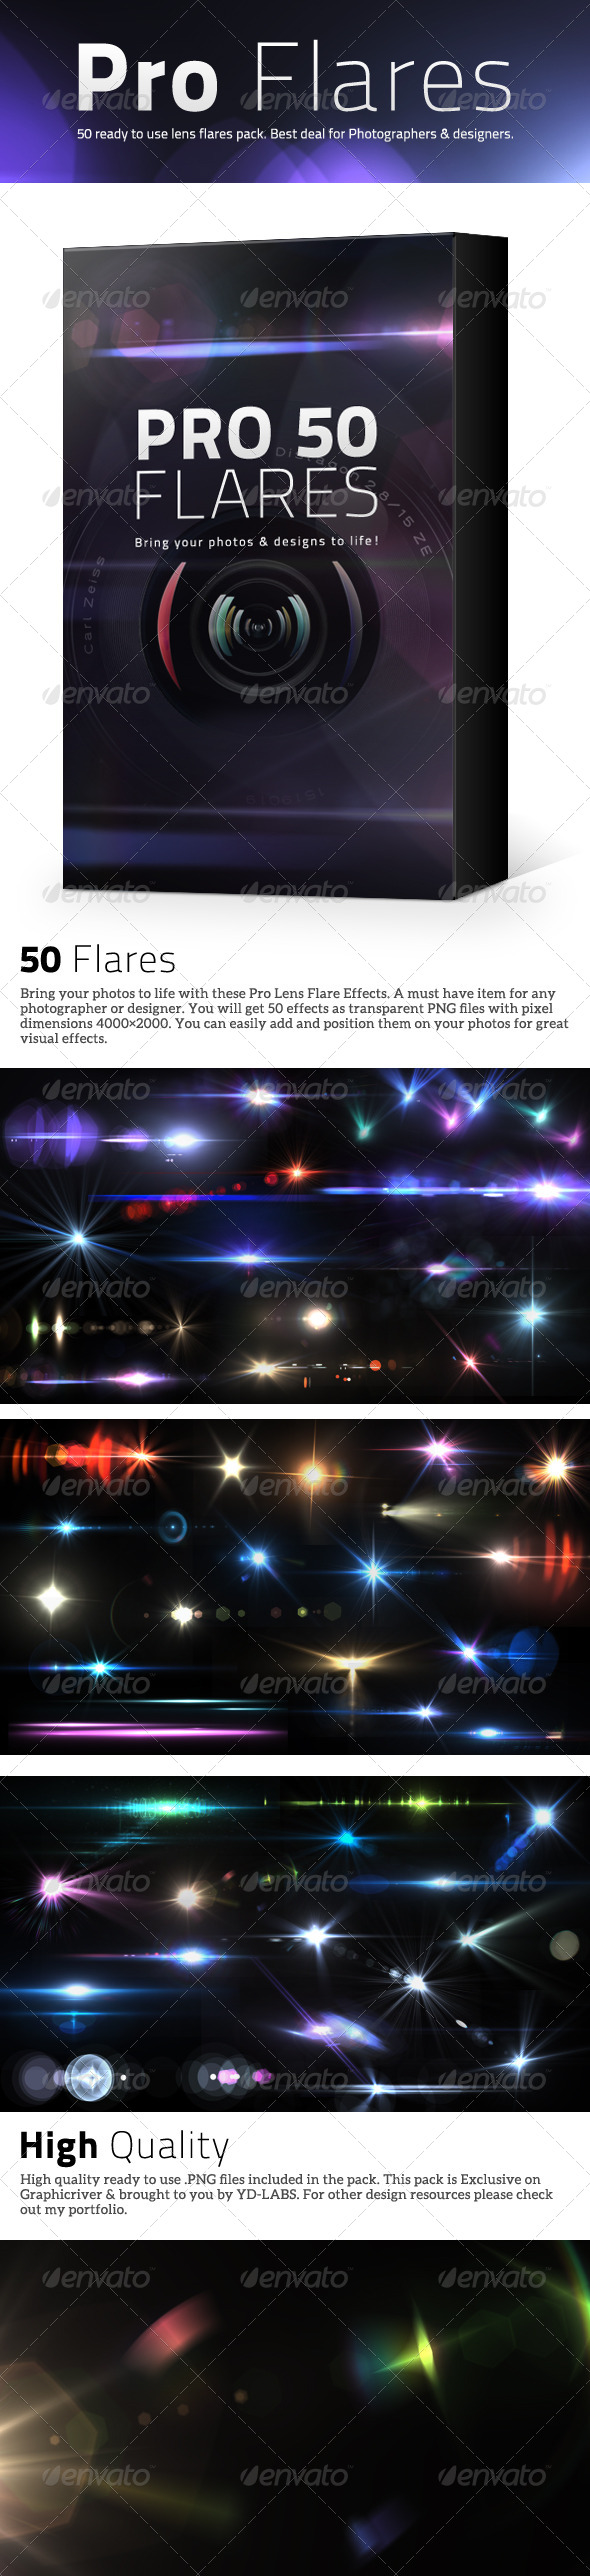 Throw Pillows Vs Lens Flare : 50 Pro Lens Flares V2 by ydlabs GraphicRiver